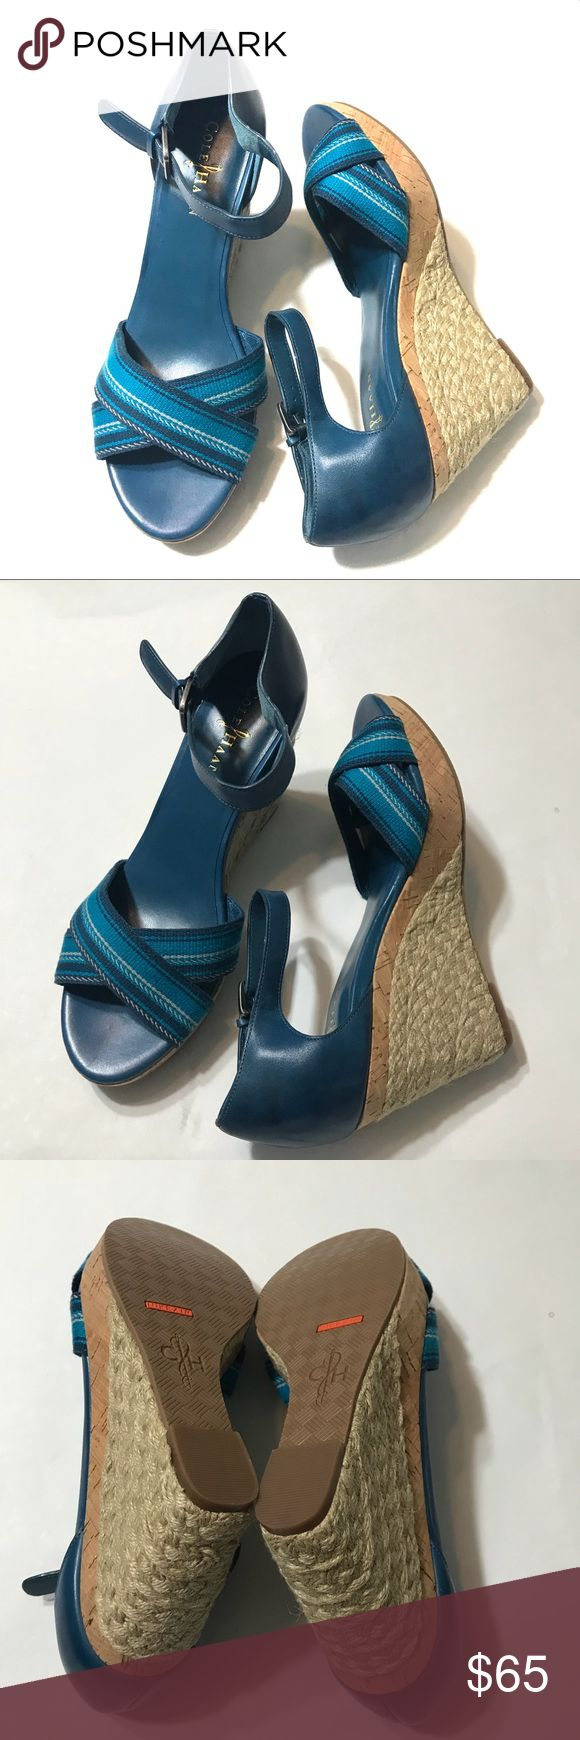 "New Cole Haan Nike Air Wedge Espdarilles Brand new, no box; Sz 9B; Heel ht 4""; Ankle Strap; Dark teal; Wedges; SCH Cole Haan Shoes Wedges"